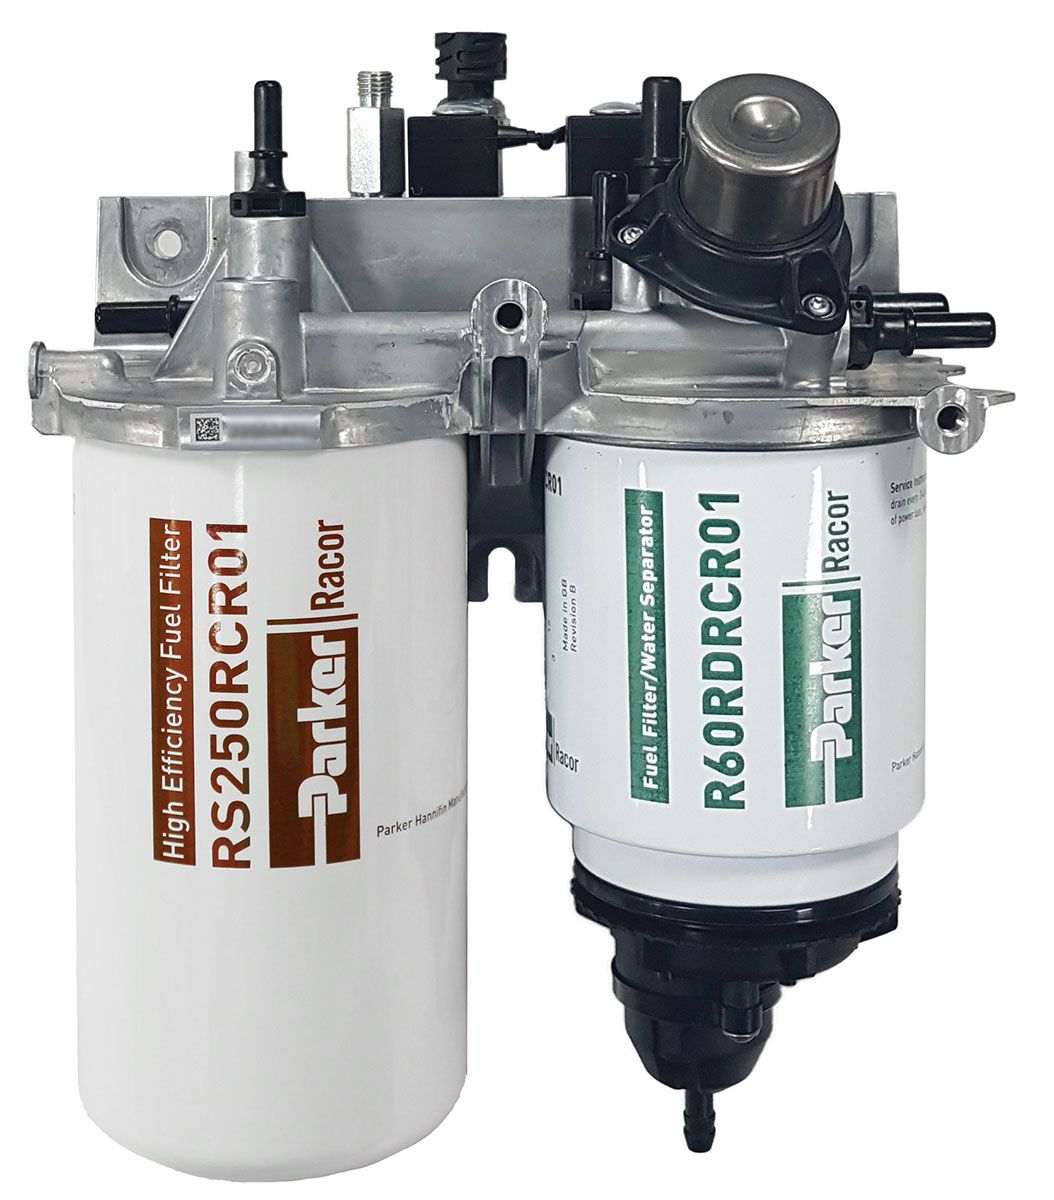 PARKER RACOR FUEL FILTER / WATER SEPARATOR EMBLY WITH MANUAL PUMP AND on